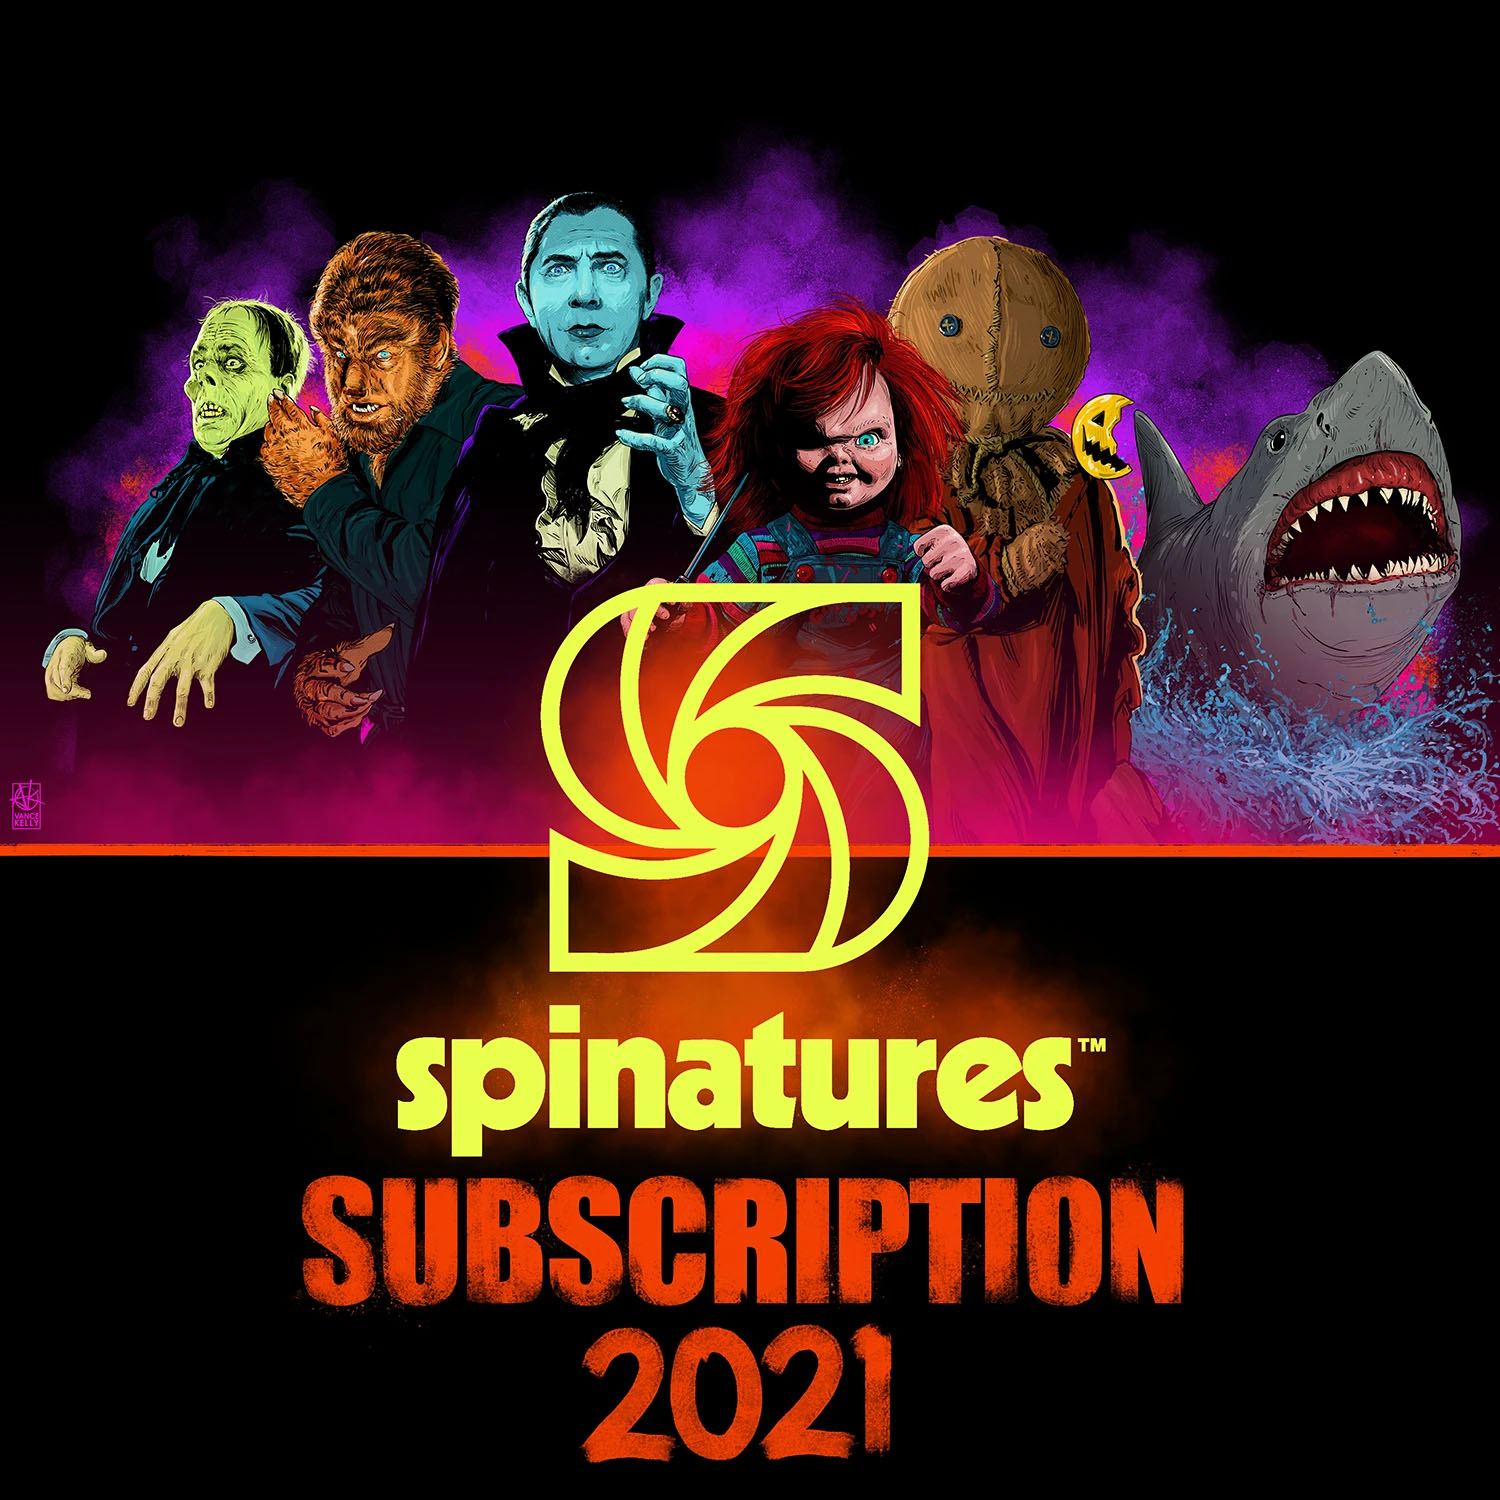 Waxwork Spinature Subscription 2021